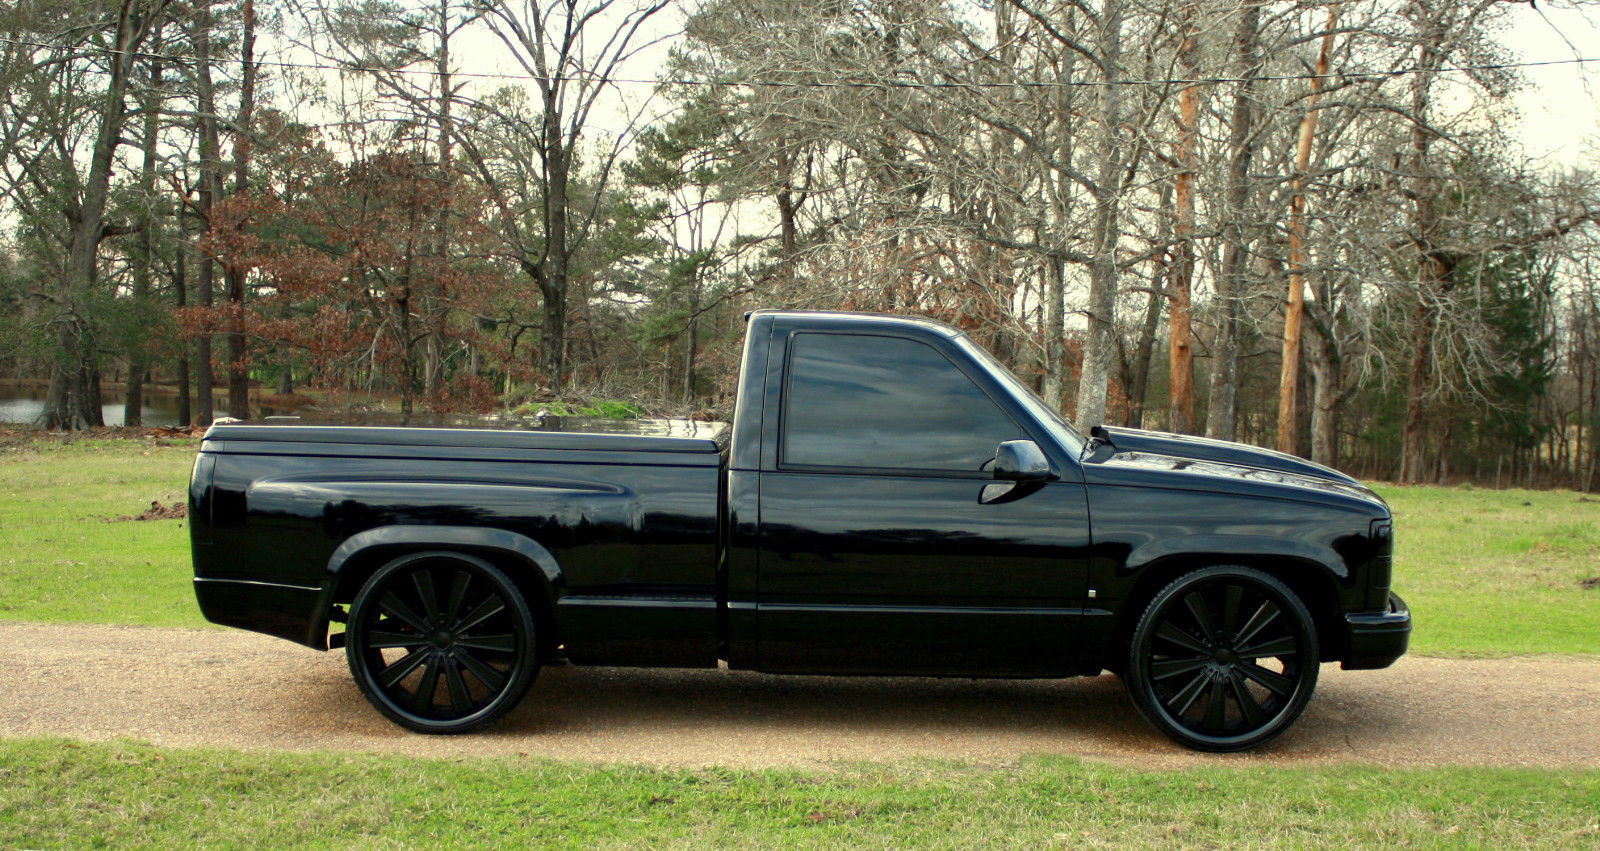 1997 chevy silverado 1500 single cab step side for sale. Black Bedroom Furniture Sets. Home Design Ideas